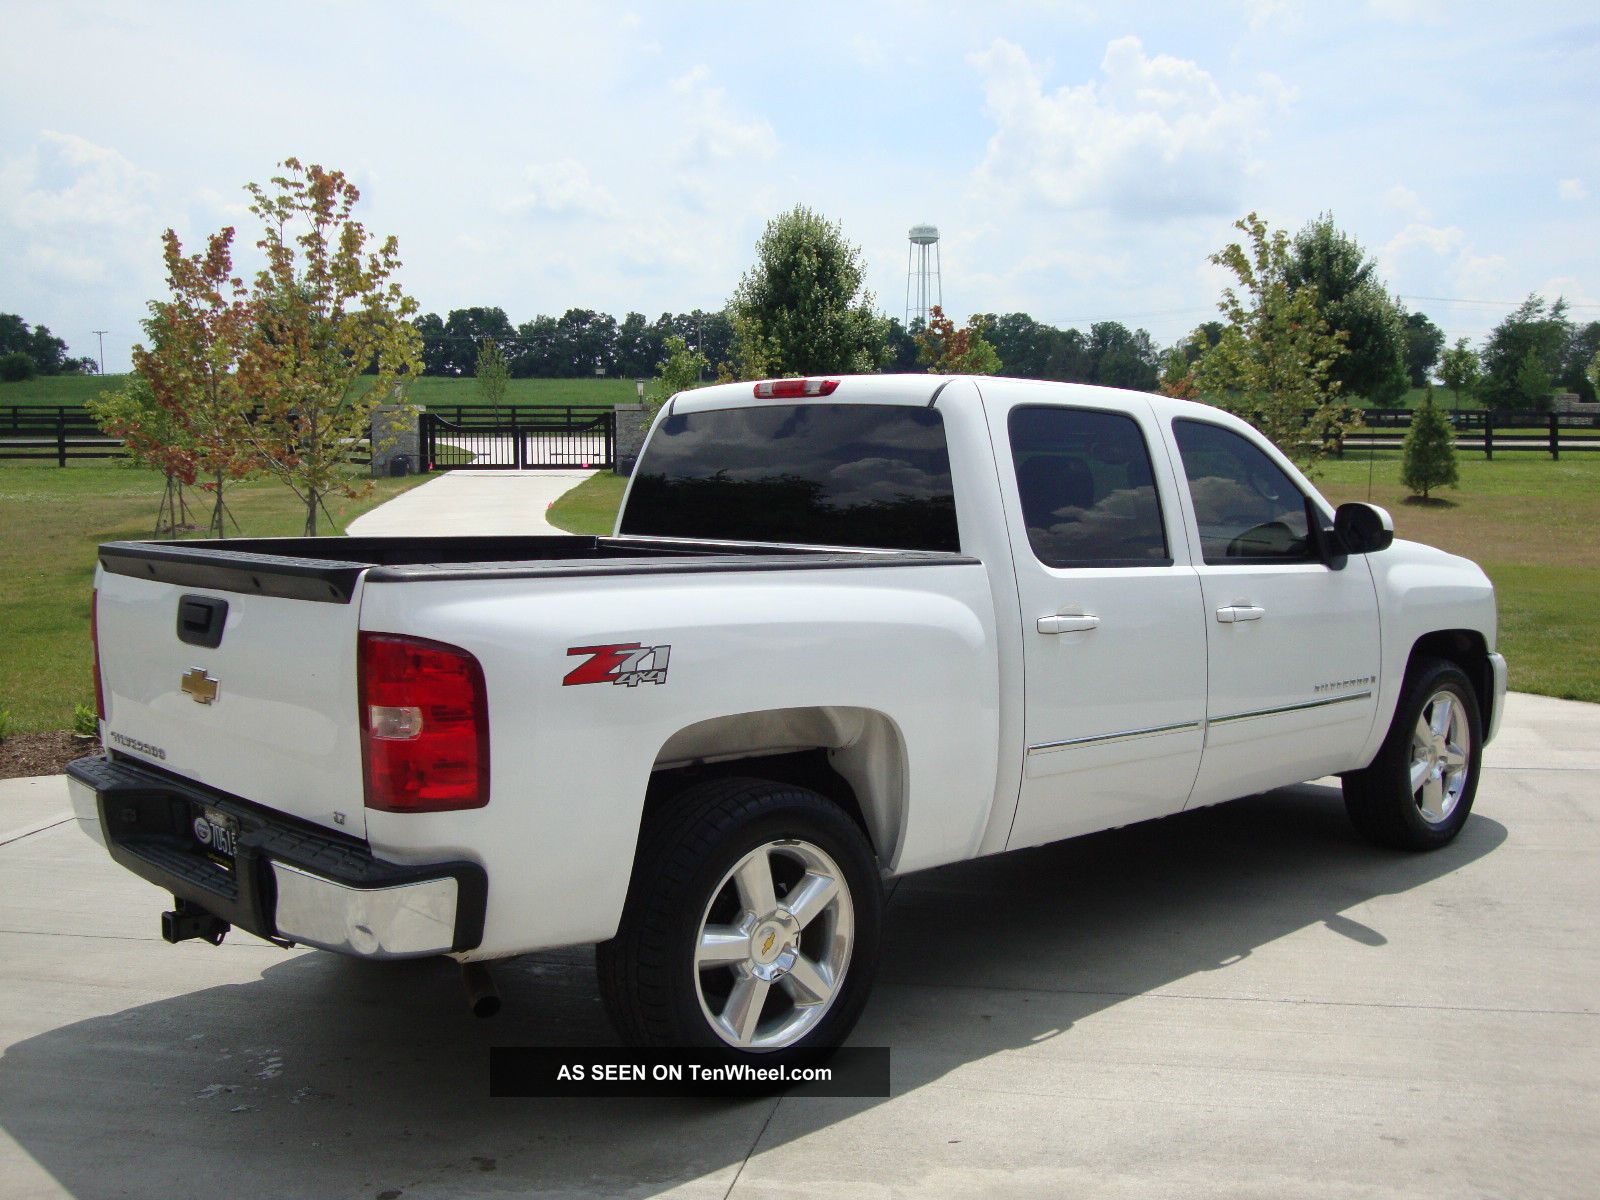 2007 chevrolet silverado 1500 lt crew cab pickup 4 door 5 3l 4x4 loaded. Black Bedroom Furniture Sets. Home Design Ideas